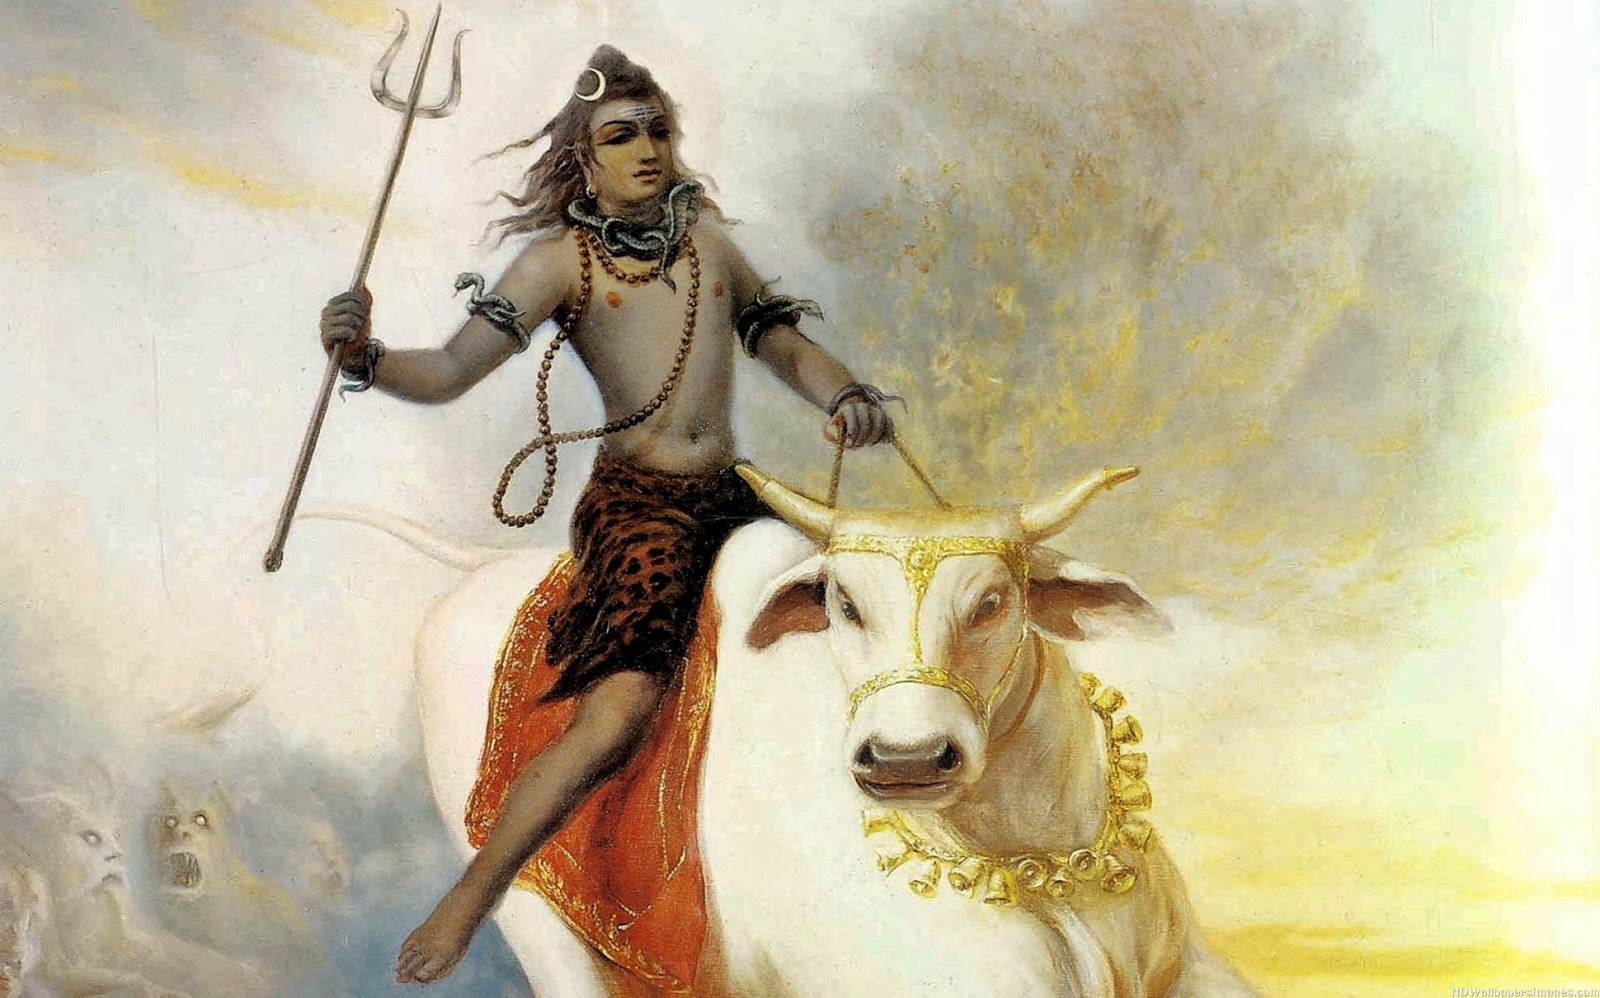 Best Wallpaper Mobile Lord Shiva - Lord%2Bshiva%2Bwith%2Bnandi%2BHD%2Bwallpapers  Picture_173331.jpg